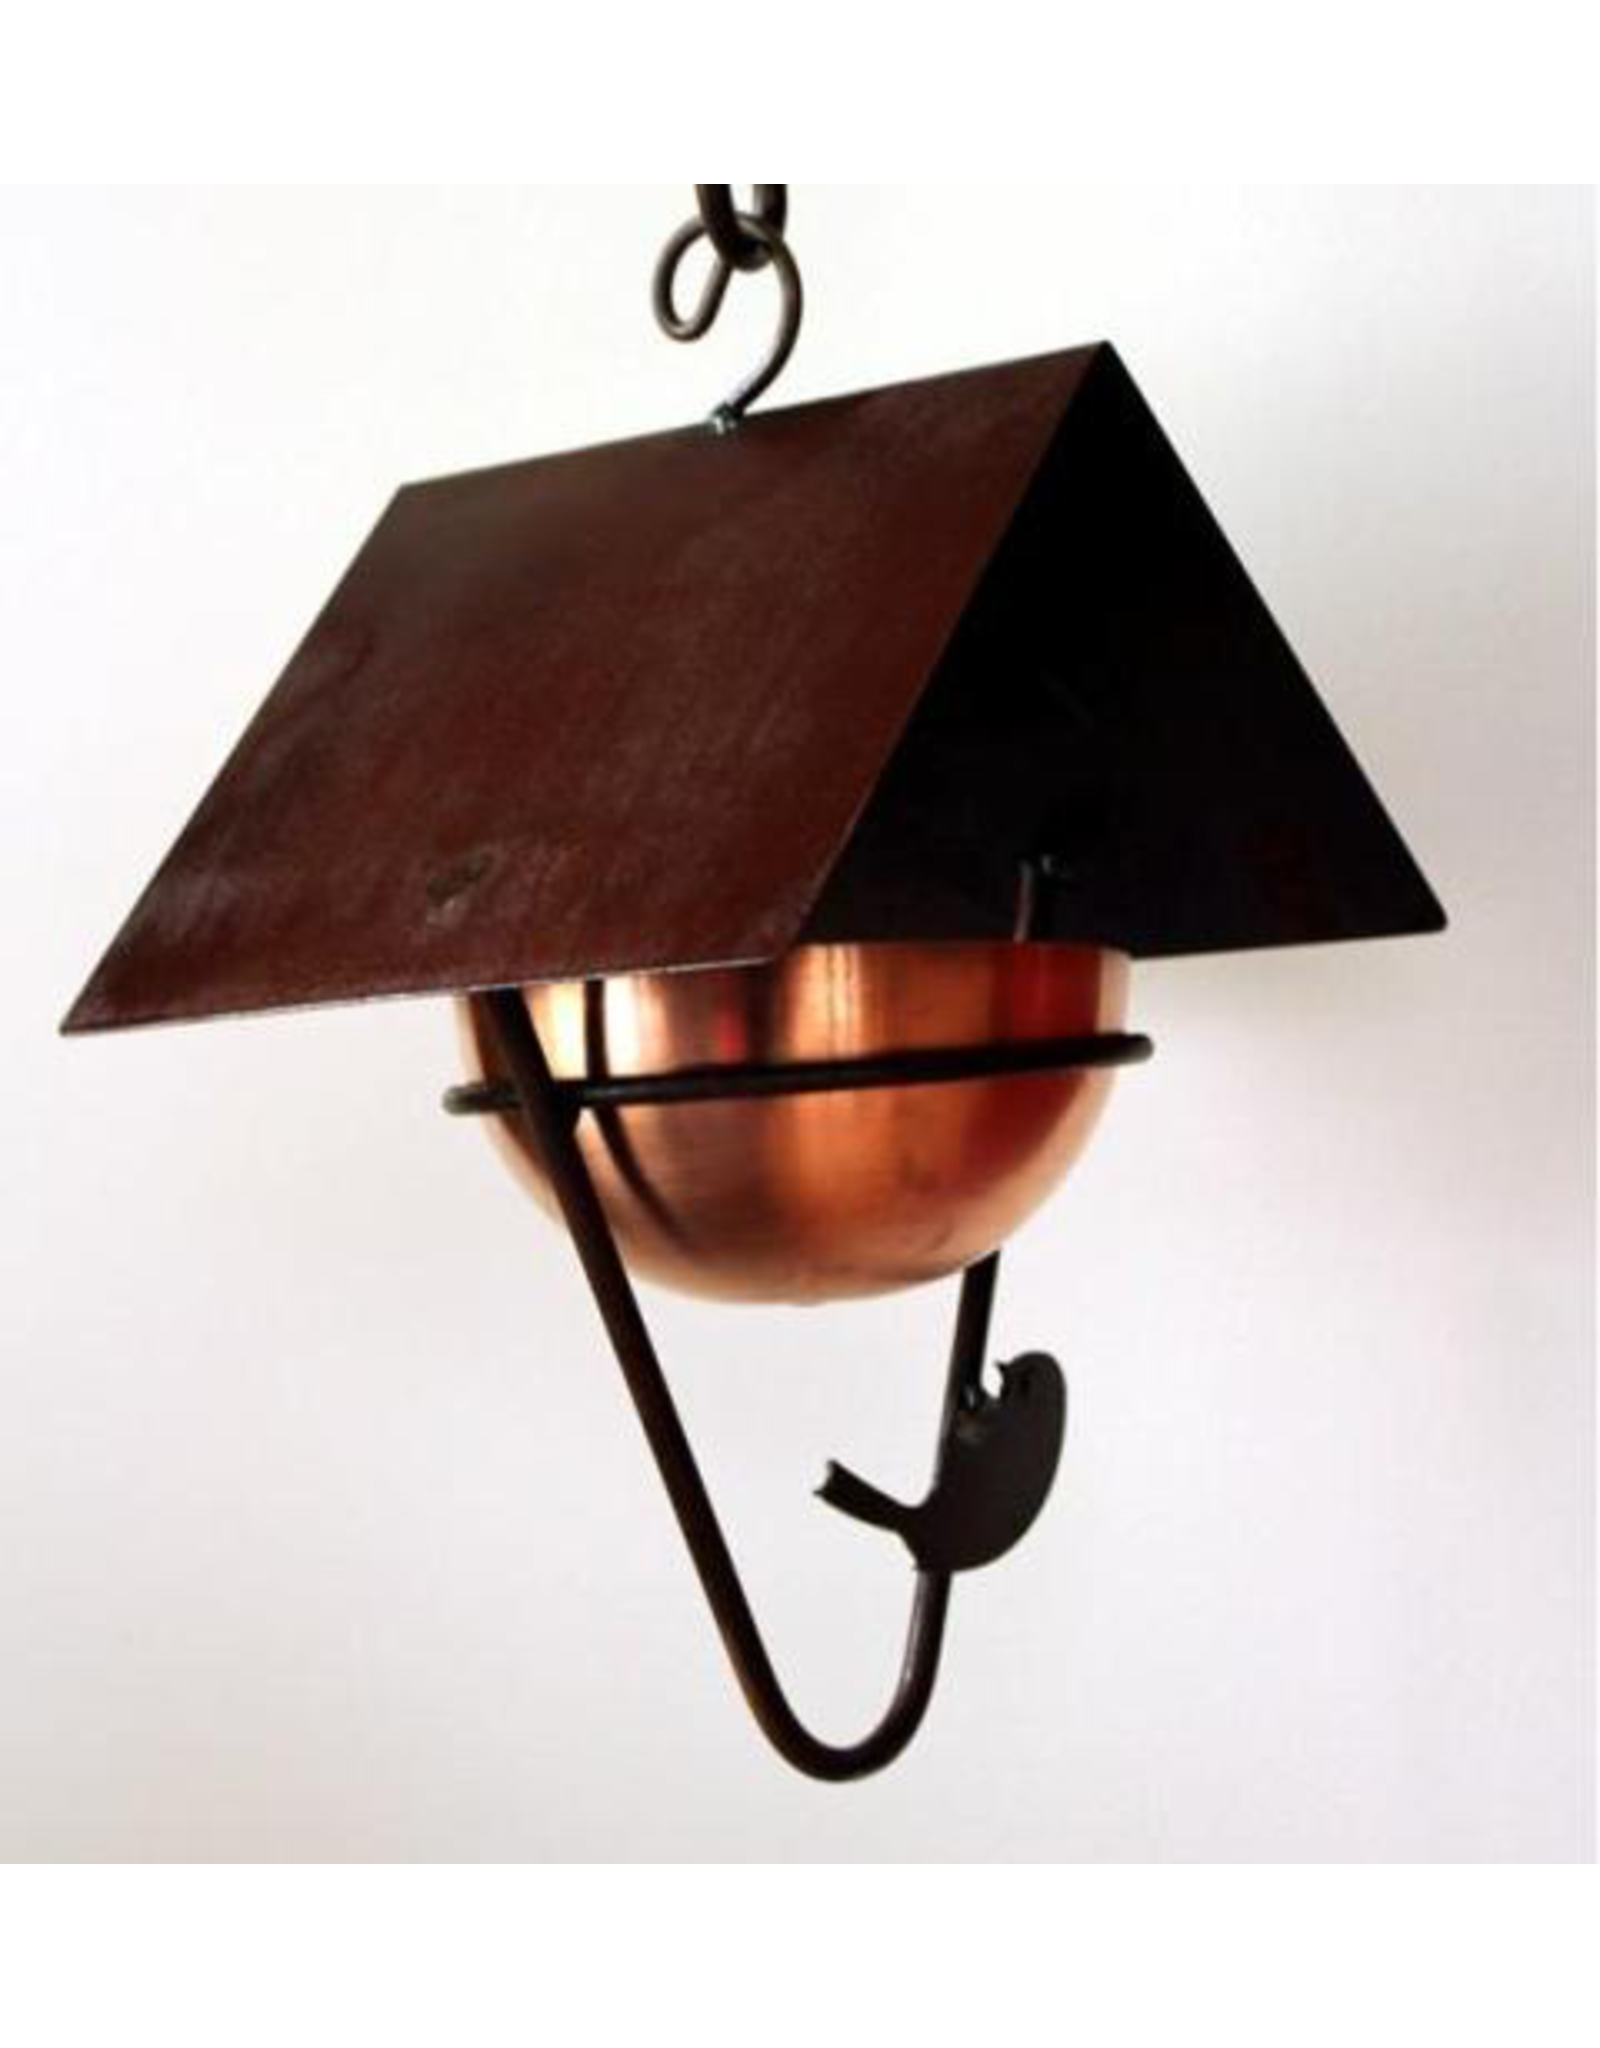 Martin House G.A. MH005 Covered bird feeder with brass bowl. Hand Made in Canada.